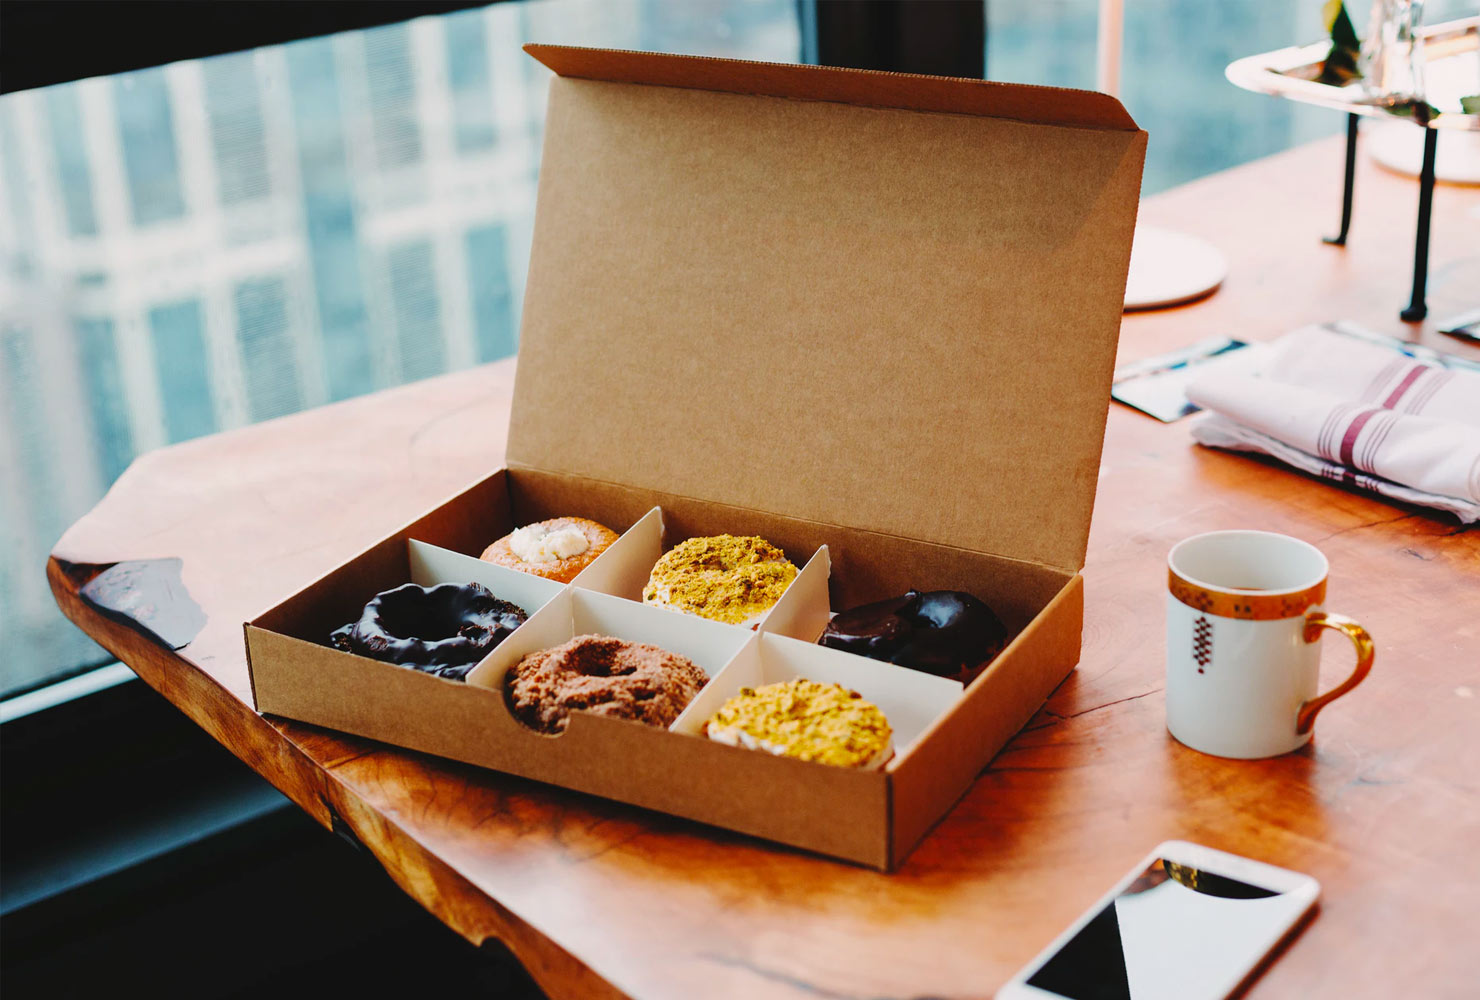 Box of donuts and coffee.